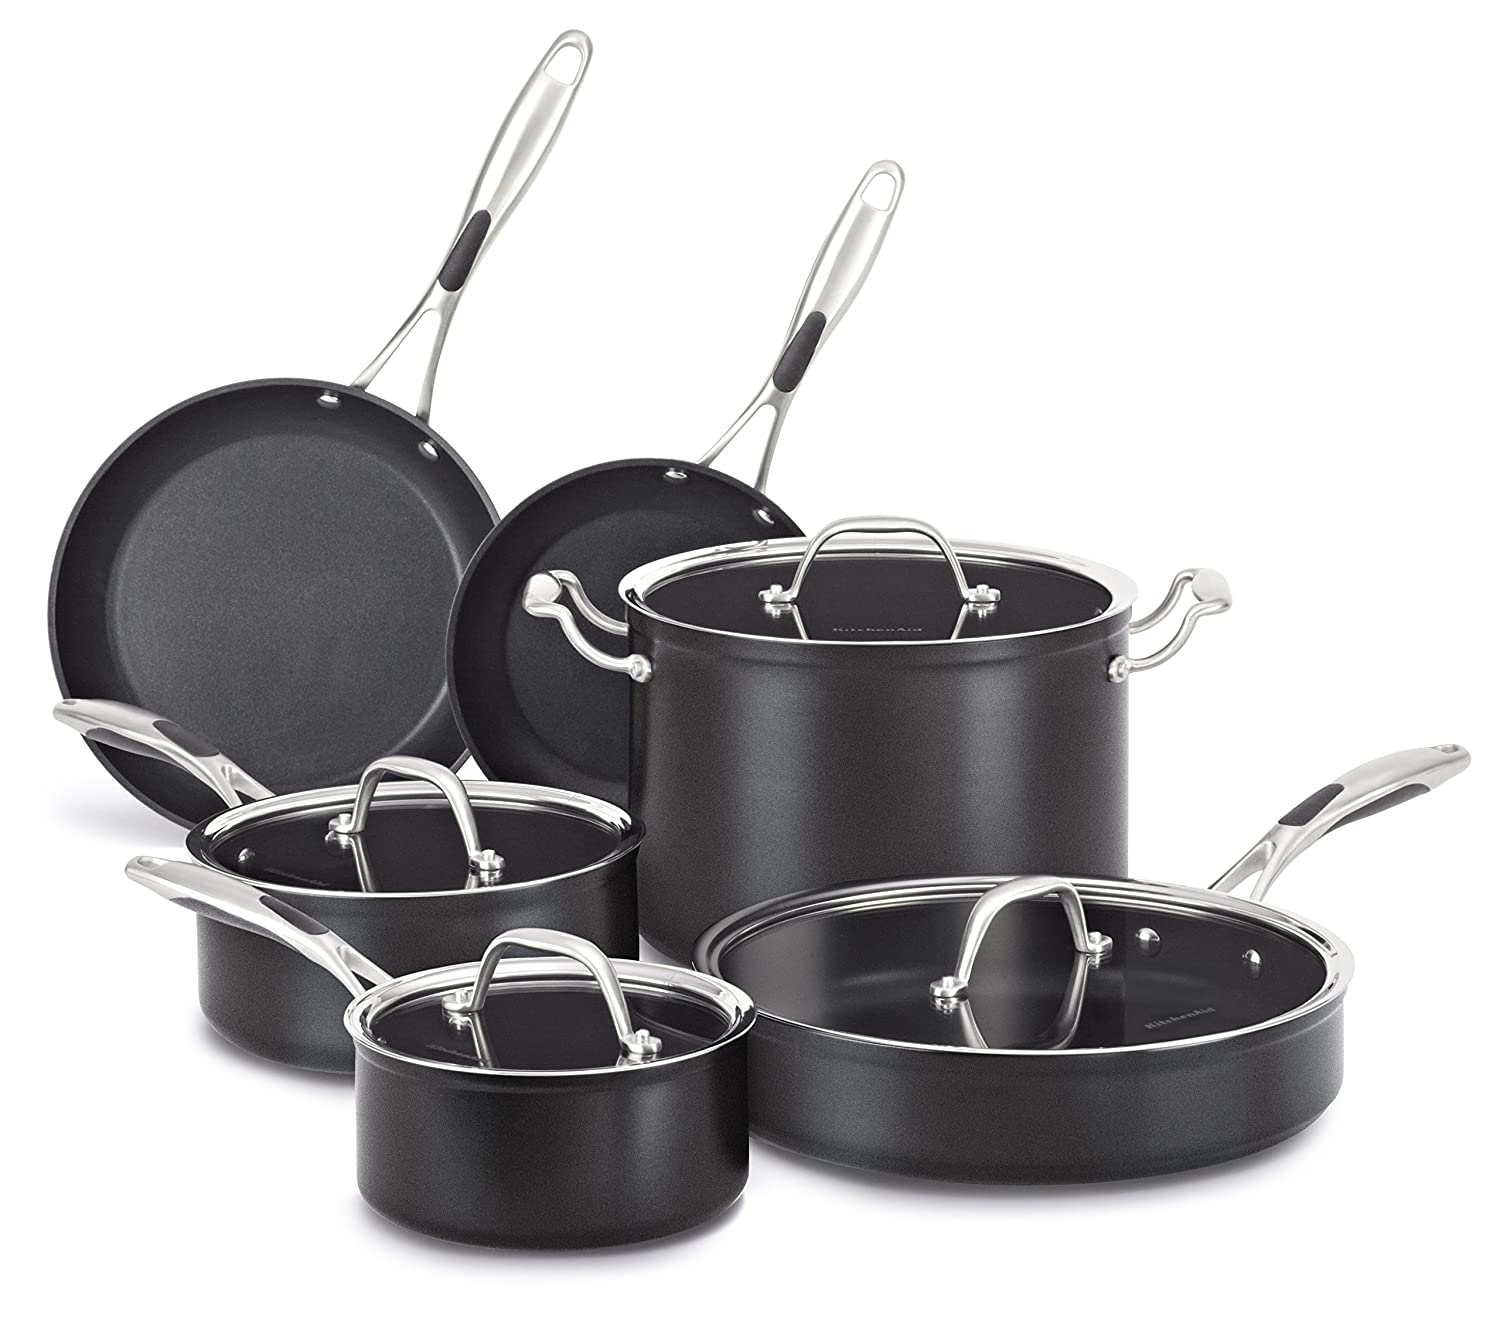 KitchenAid KCH1S10KD Hard Anodized Nonstick 10-Piece Cookware Set - Black Diamond